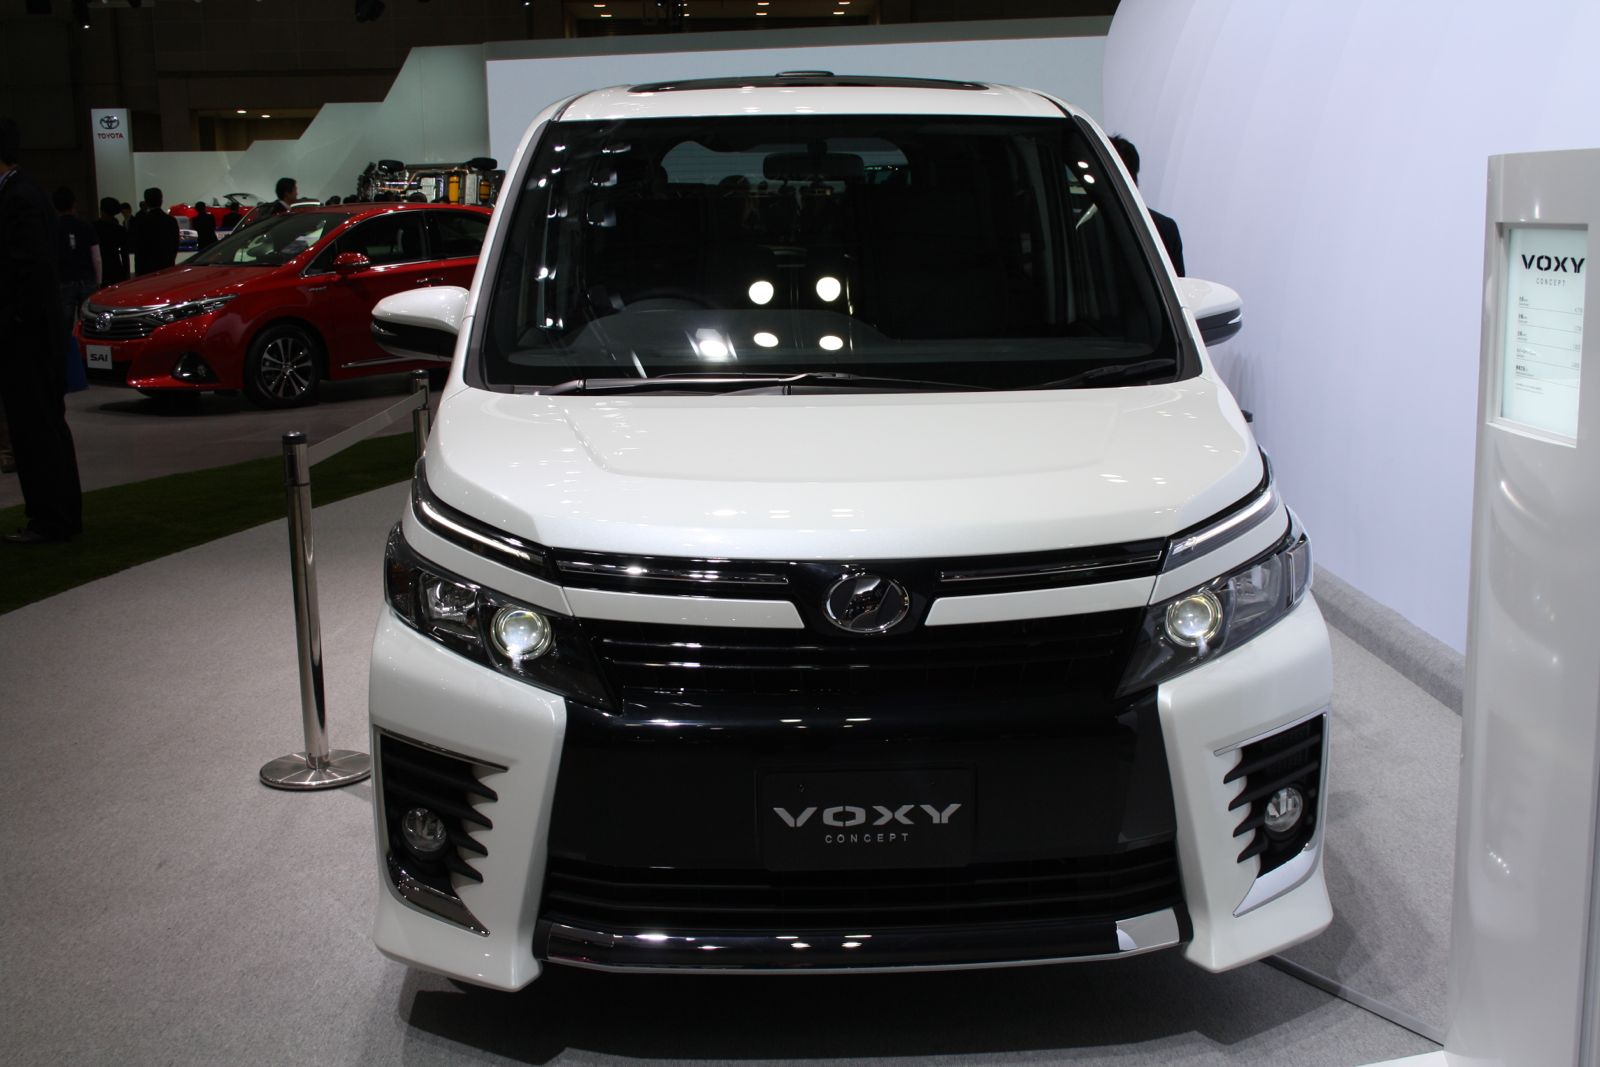 2013 Tokyo Motor Show Live Toyota Voxy And Noah Concepts